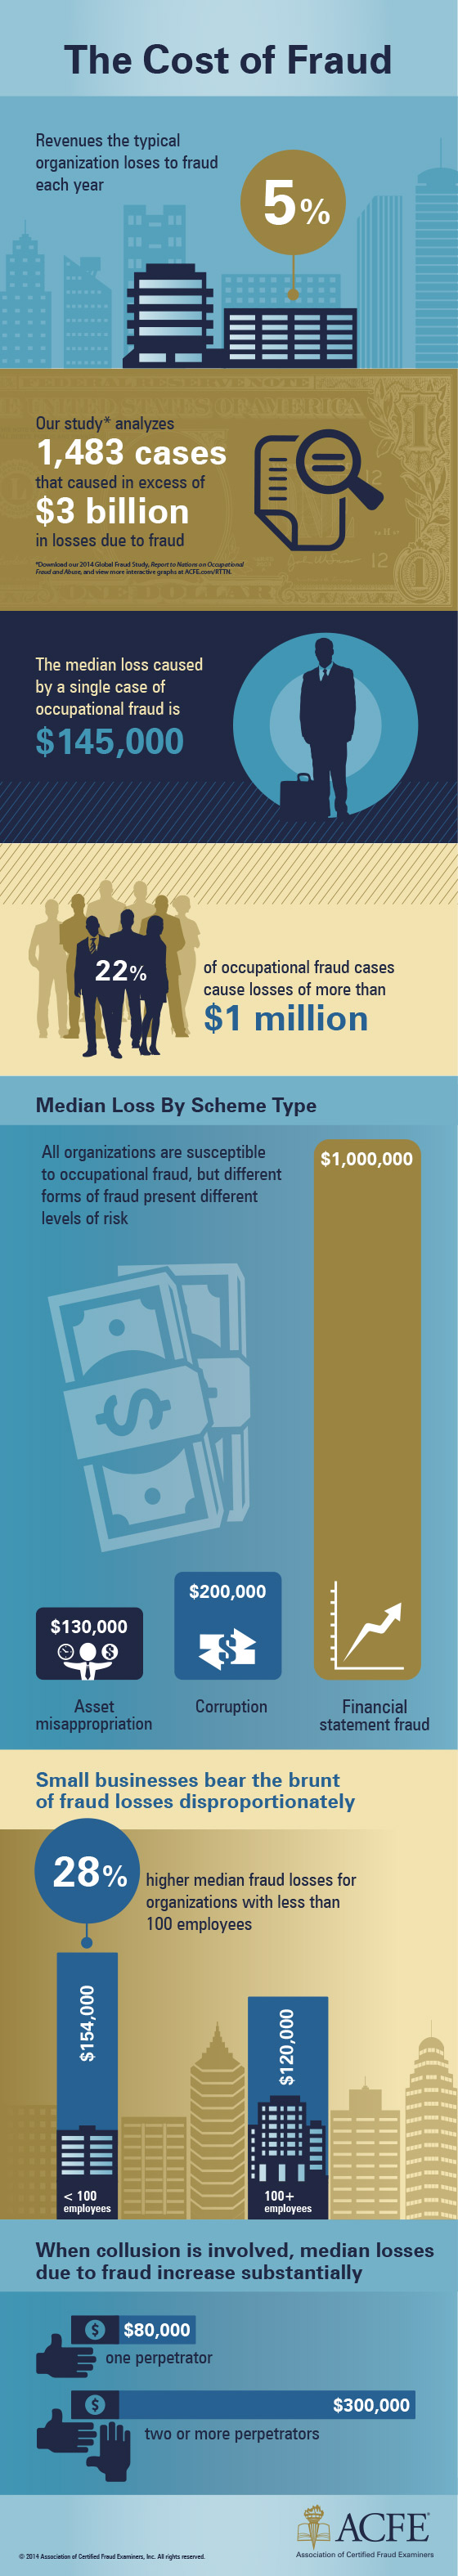 cost-of-fraud-infographic